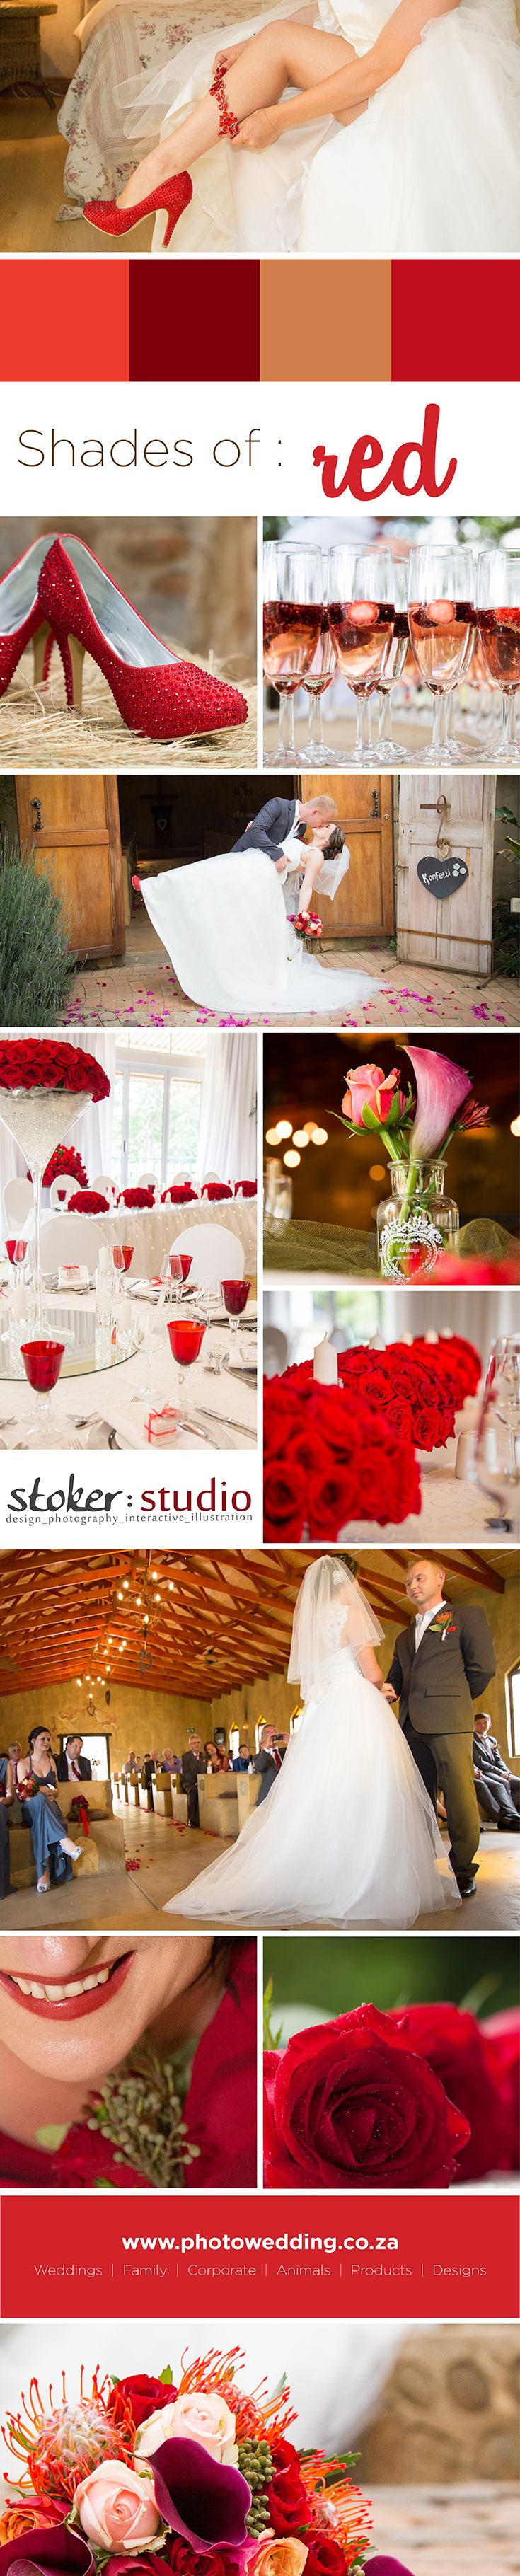 Red represents ENERGY, ACTION, DESIRE & PASSION ! Perfect pallet for those passionate wedding vibes :-)